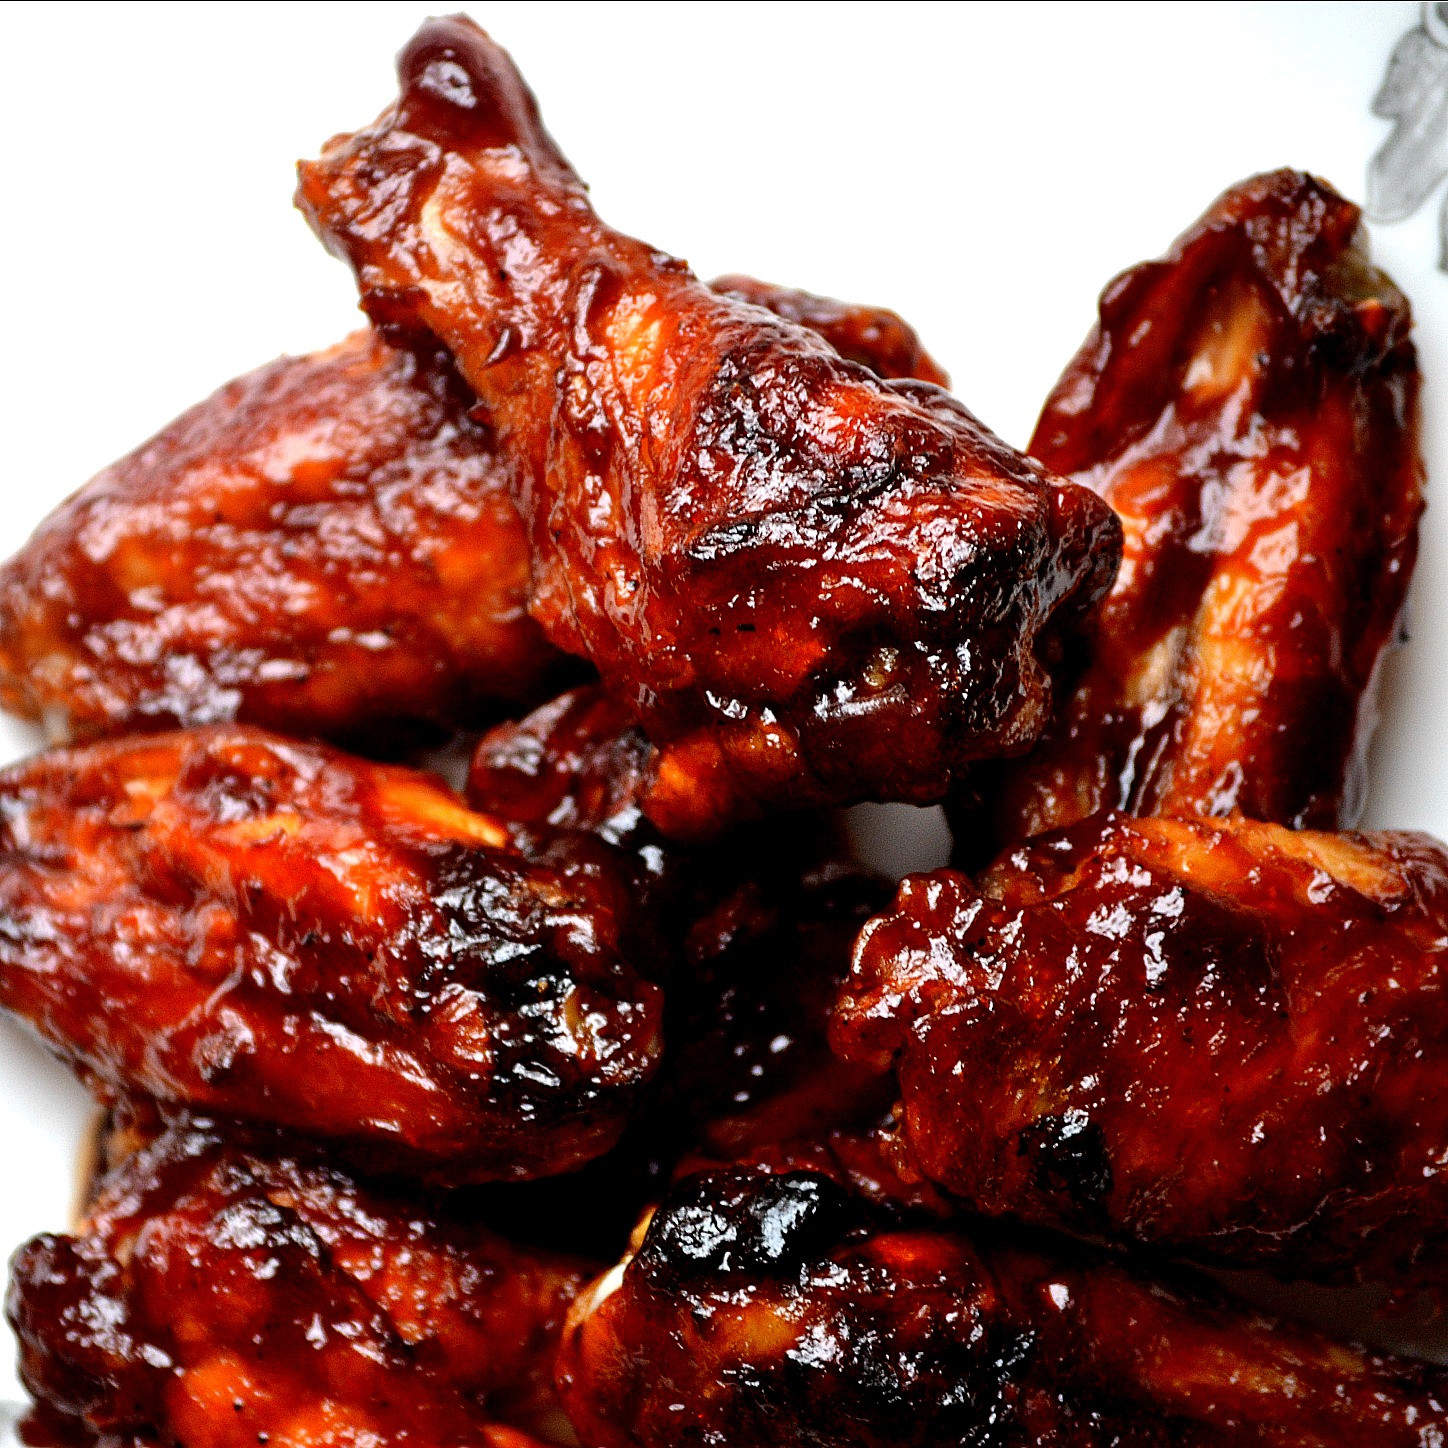 Bbq Chicken Wings Recipe  Oven Baked Sriracha and Beer BBQ Chicken Wings and Pasta